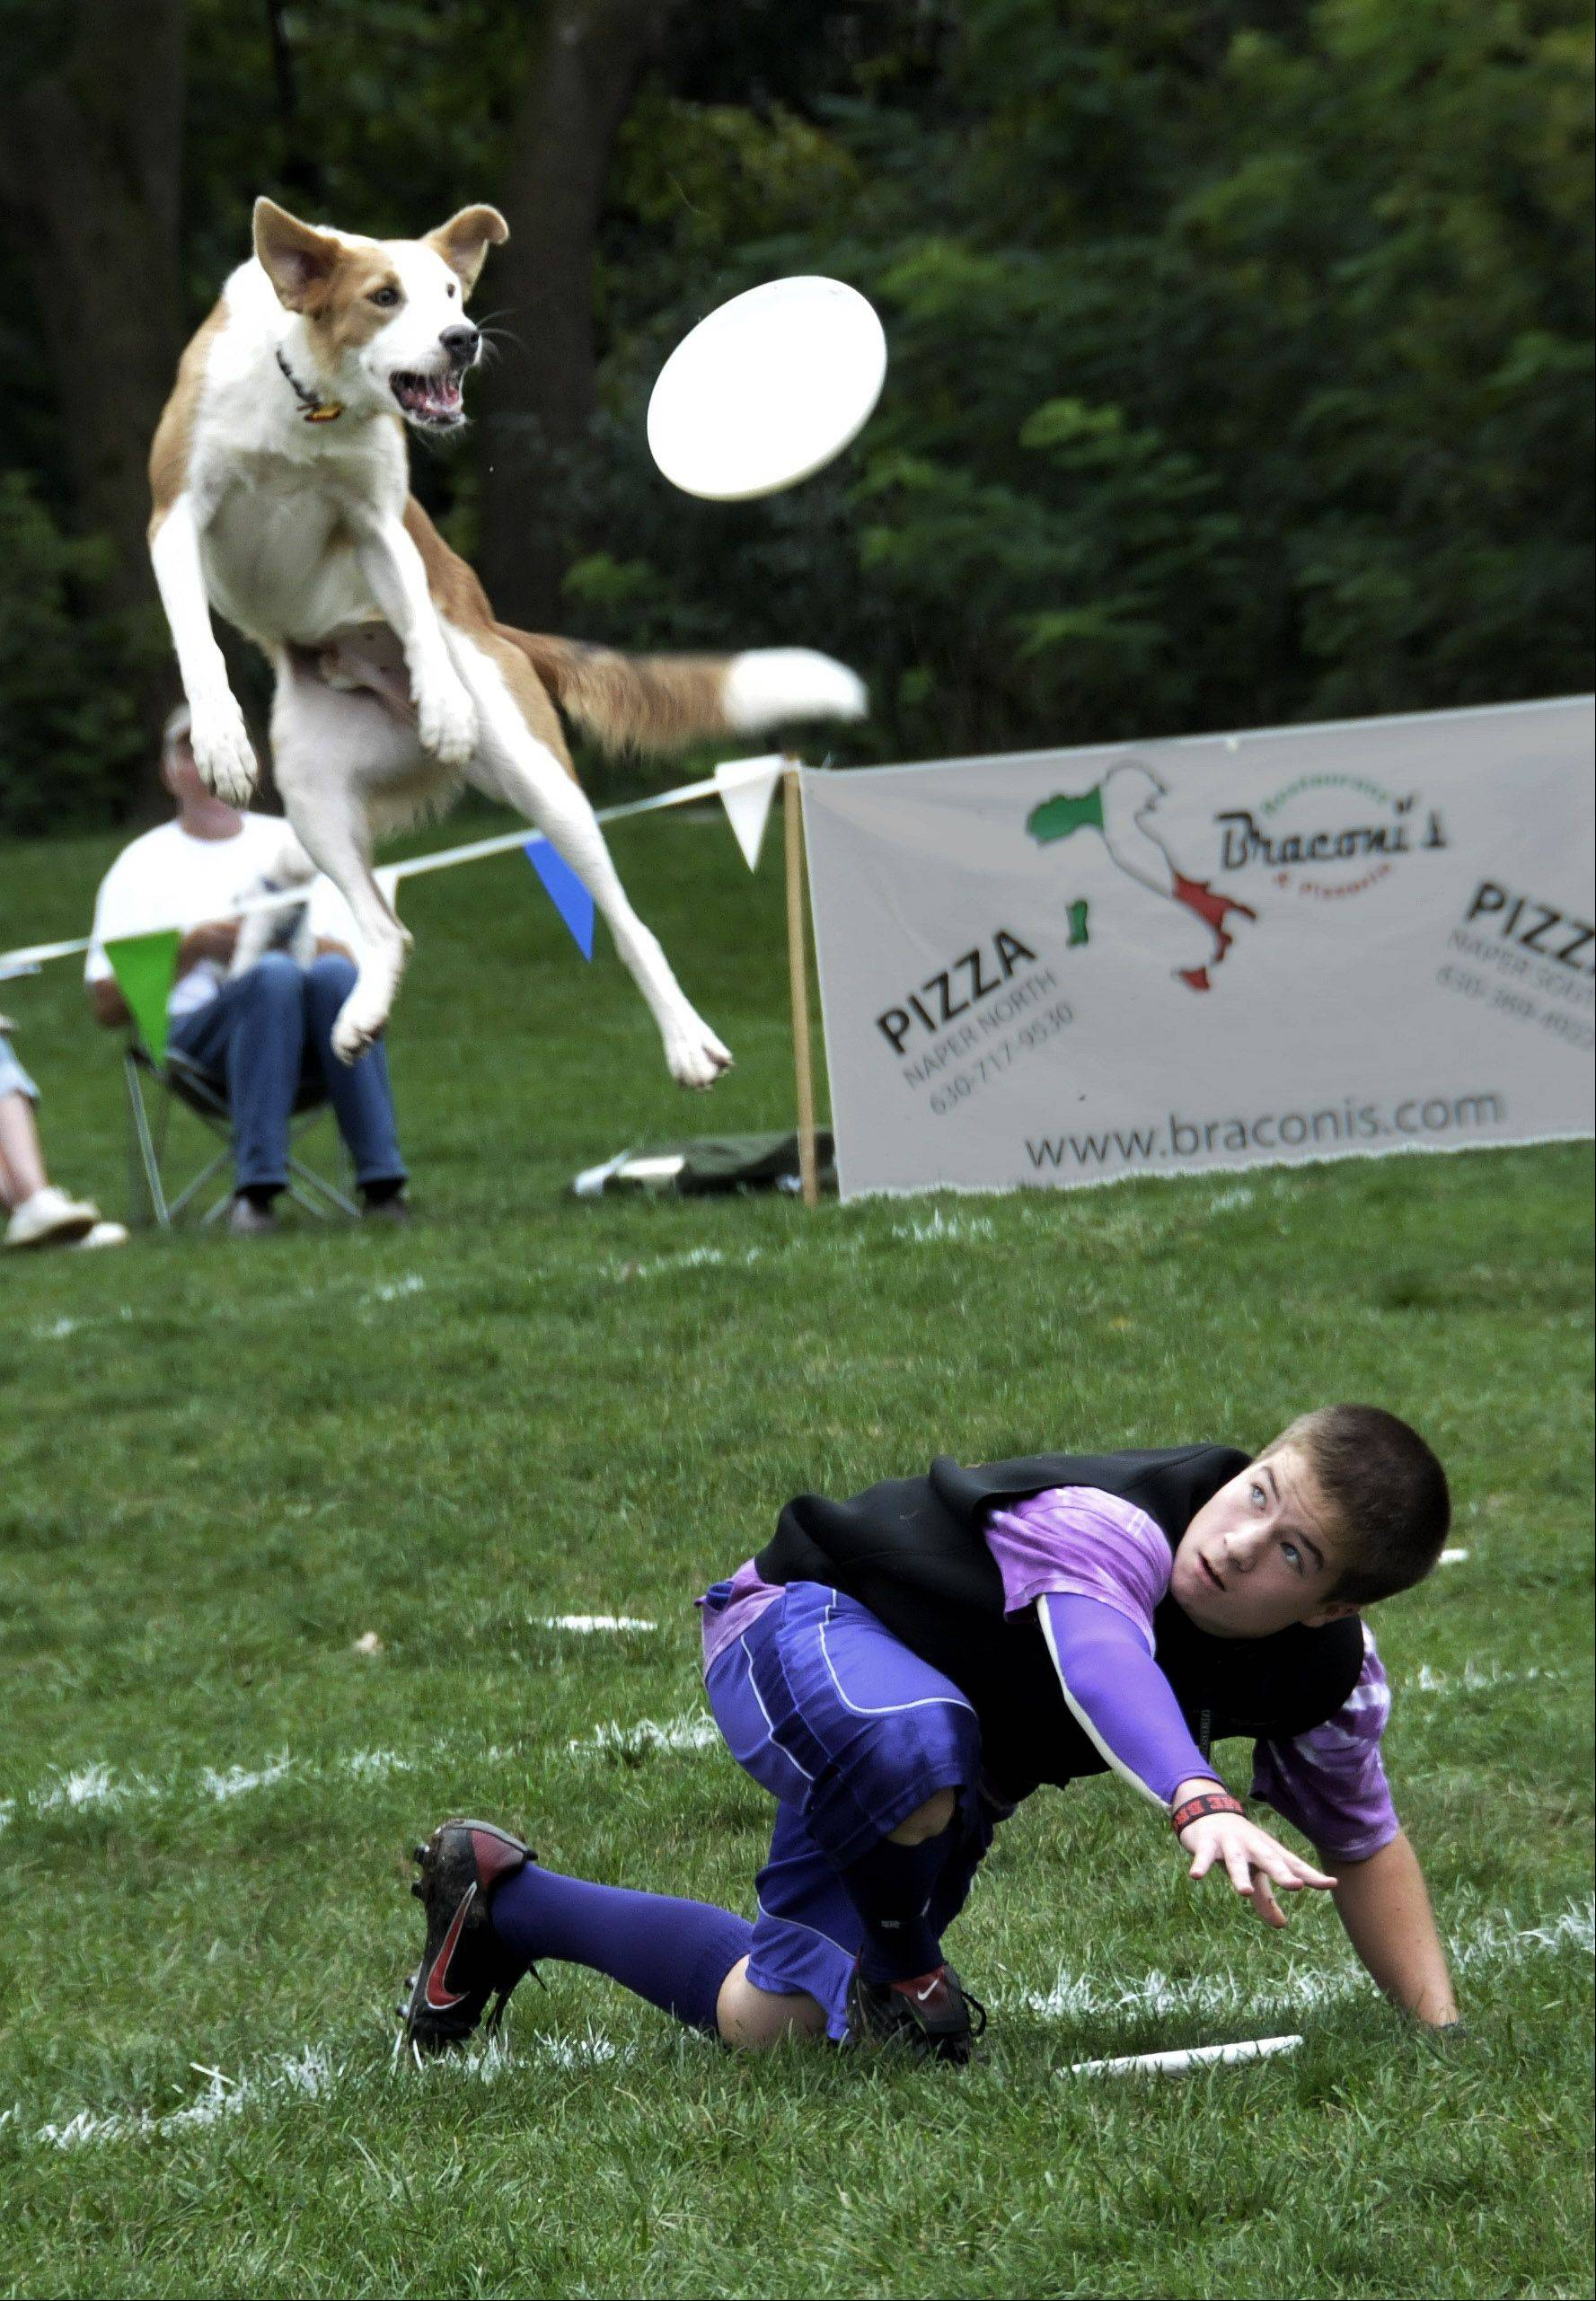 Jordan Bybee, of Louisville, Kentucky, goes through his routine with his Border Collie, Rambler, during Sunday's dog disc-catching competition, the Ashley Whippet Invitational, in Naperville. Bybee said works out for at least a half-hour every day with Rambler. The competition was part of Naperville's Last Fling festival, which continues Monday.